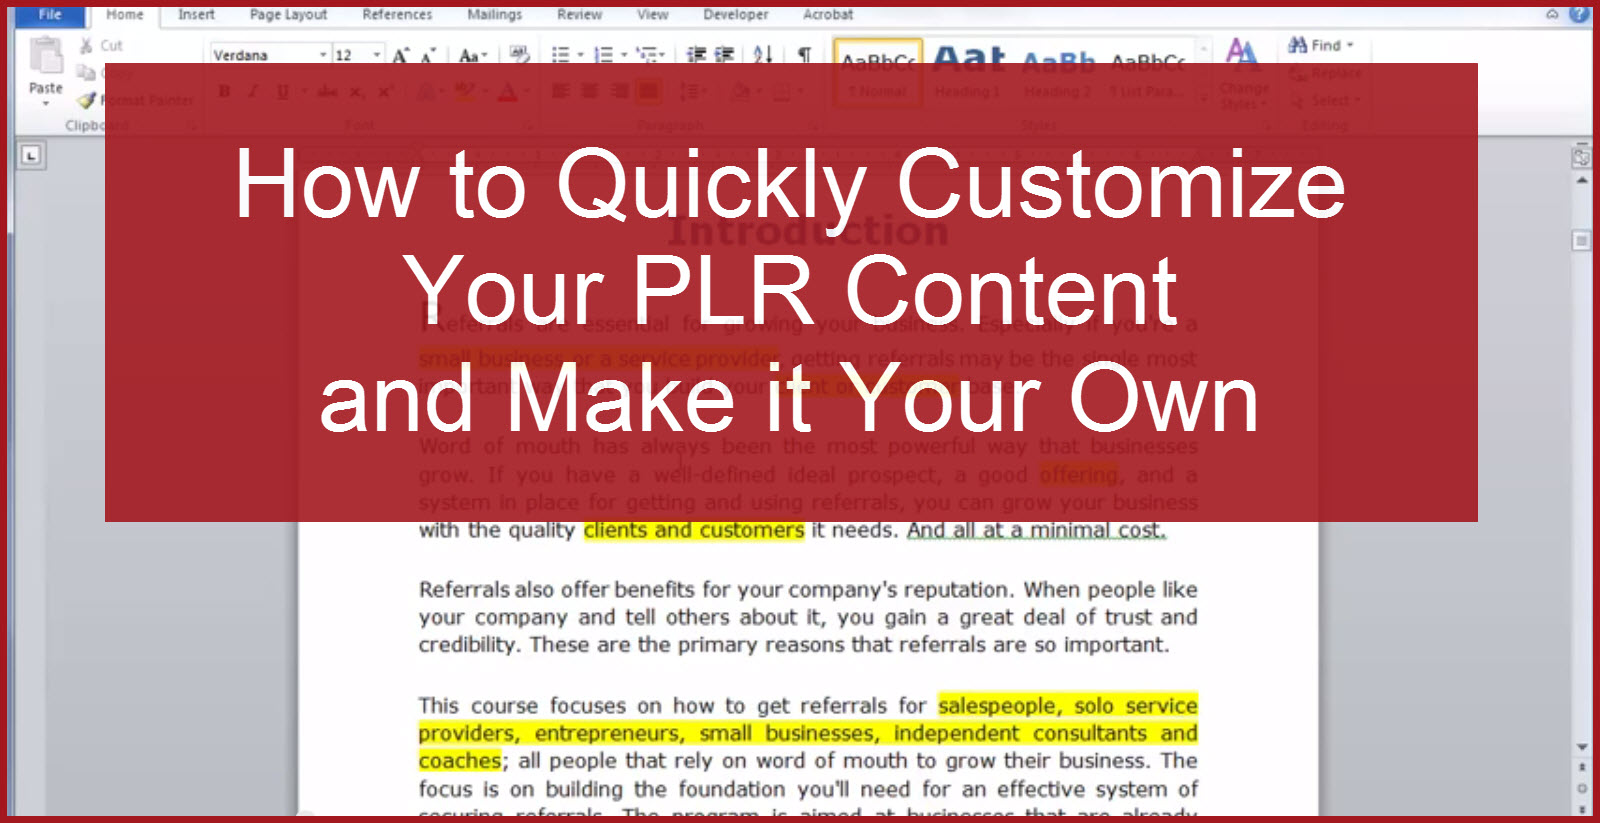 How to Quickly Customize Your Content